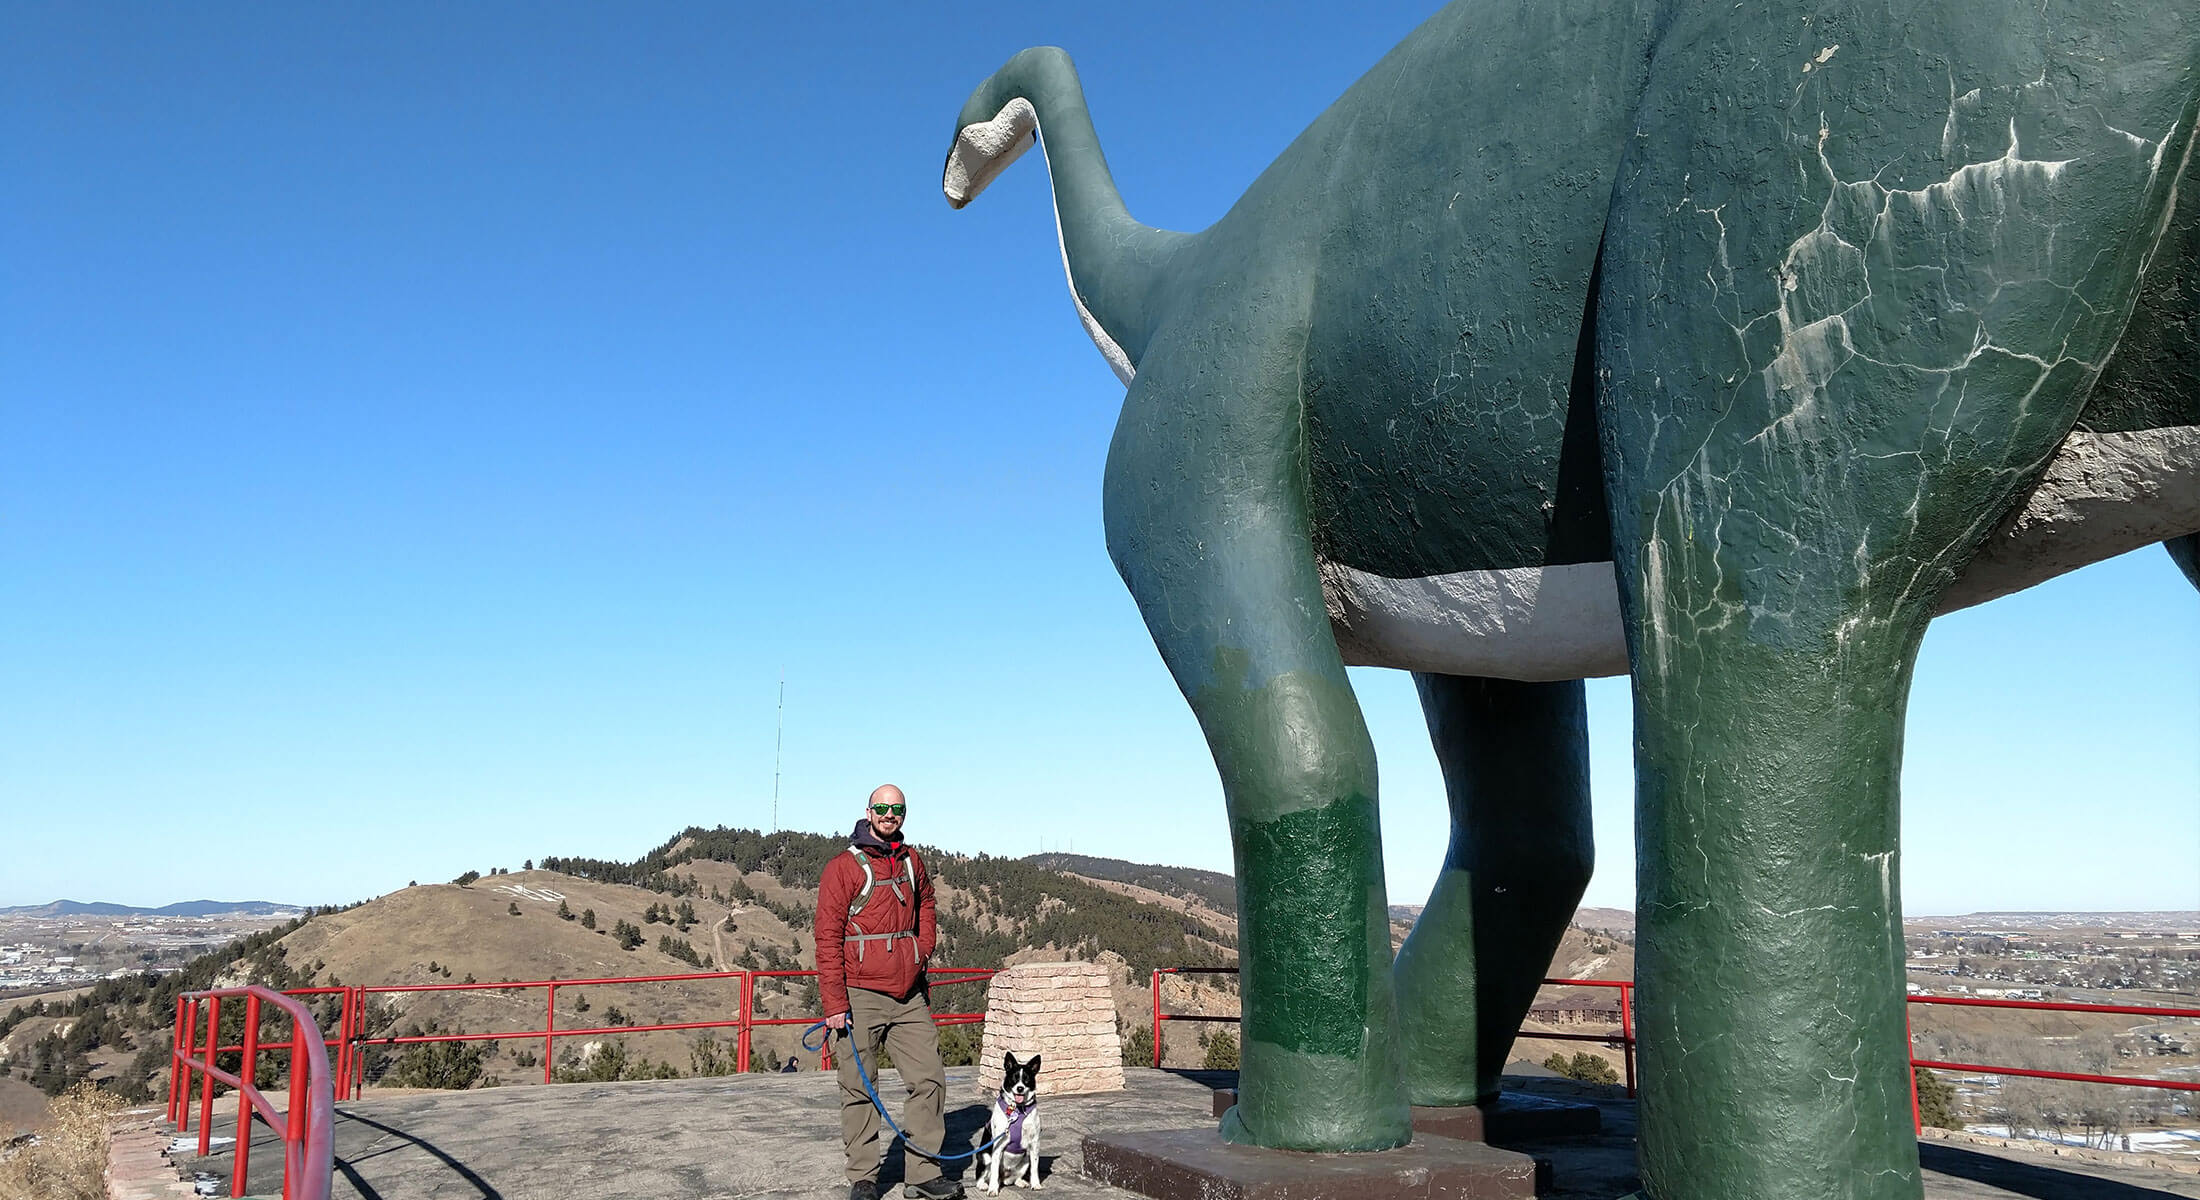 Standing next to the Dinosaur at Dinosaur Park